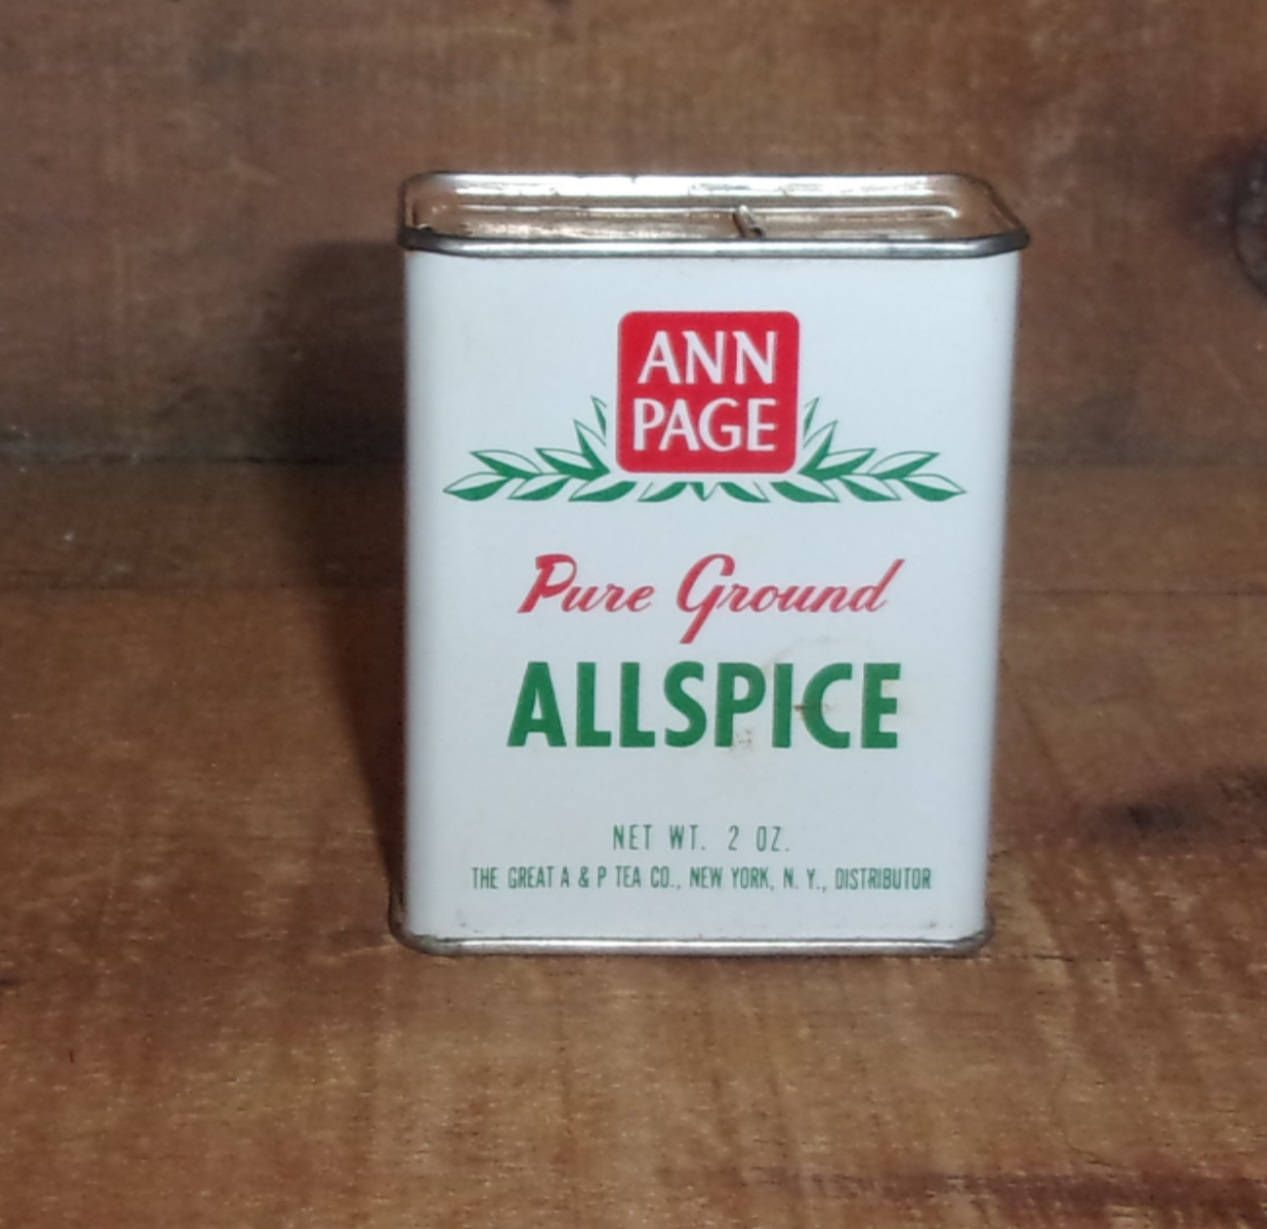 Ann Page Allspice Spice Tin - Kitchen & Dining - Advertising ...